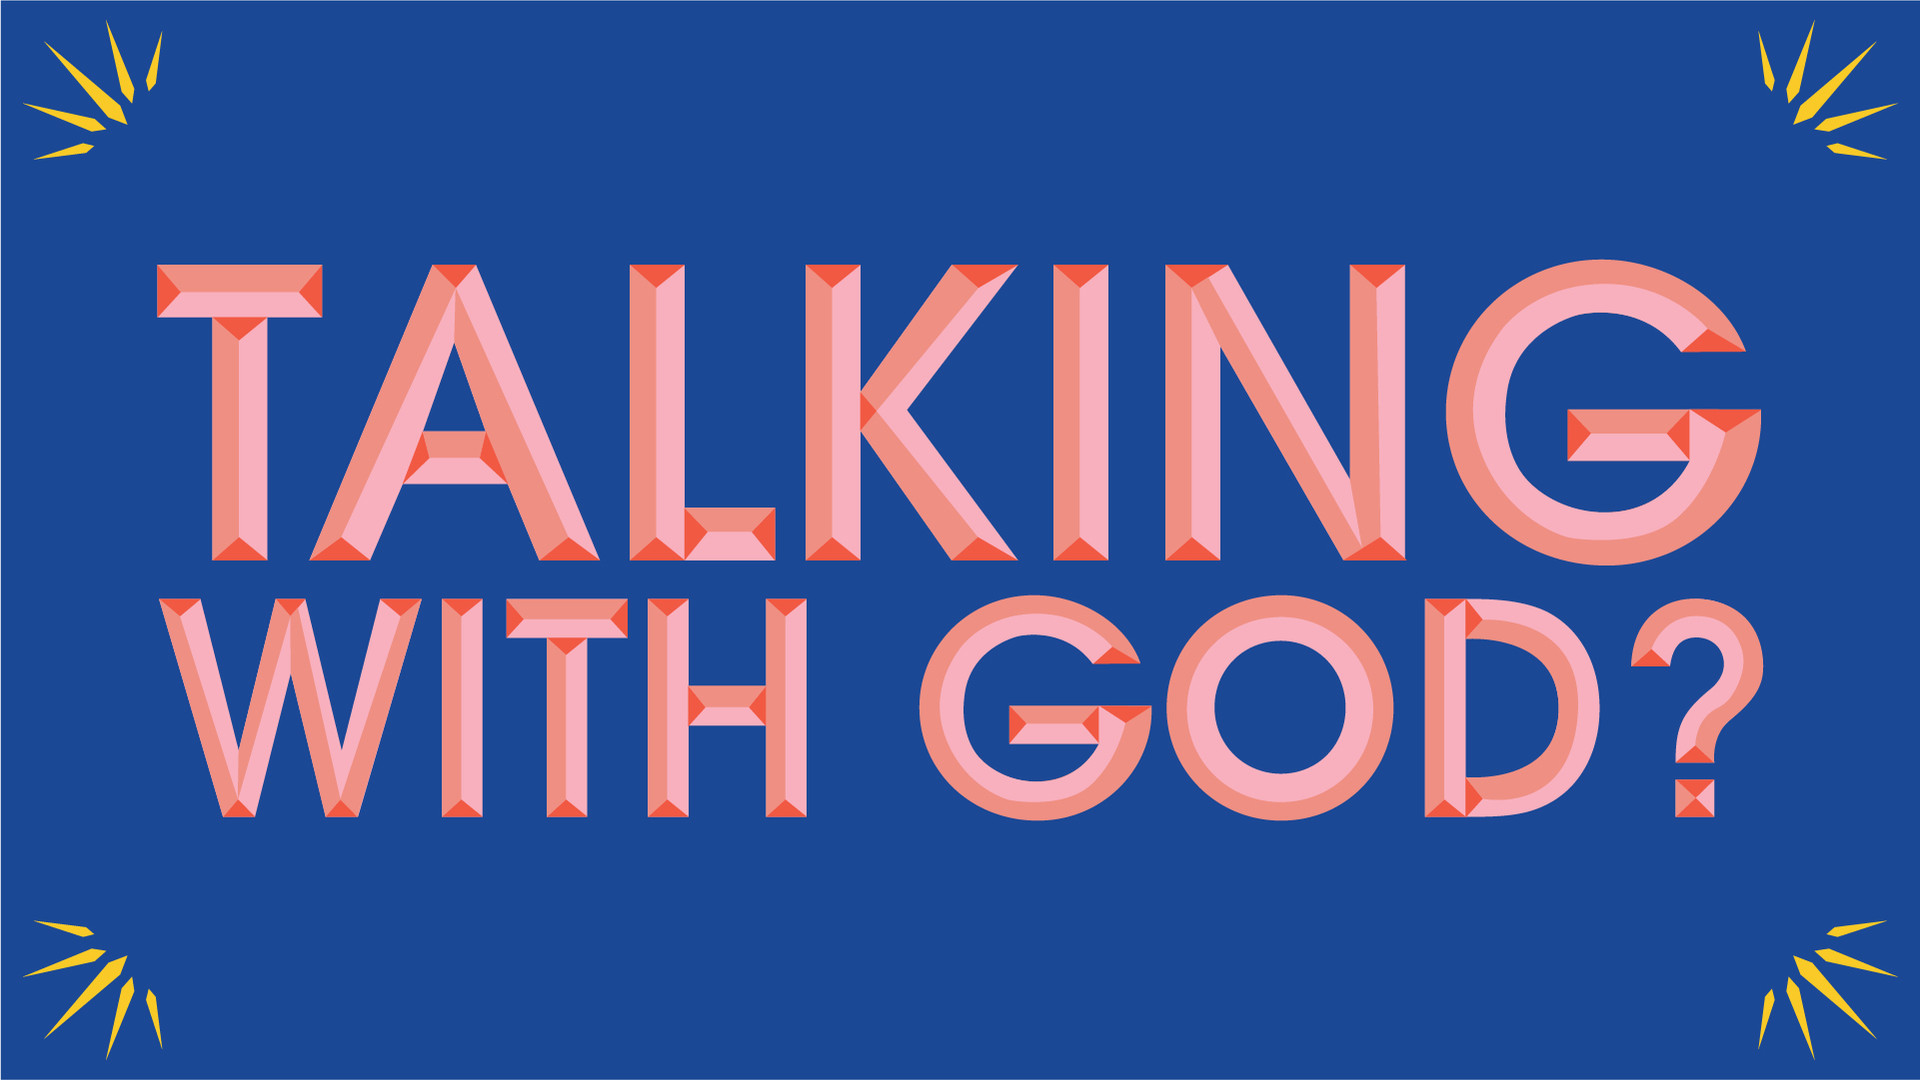 Talking with God?